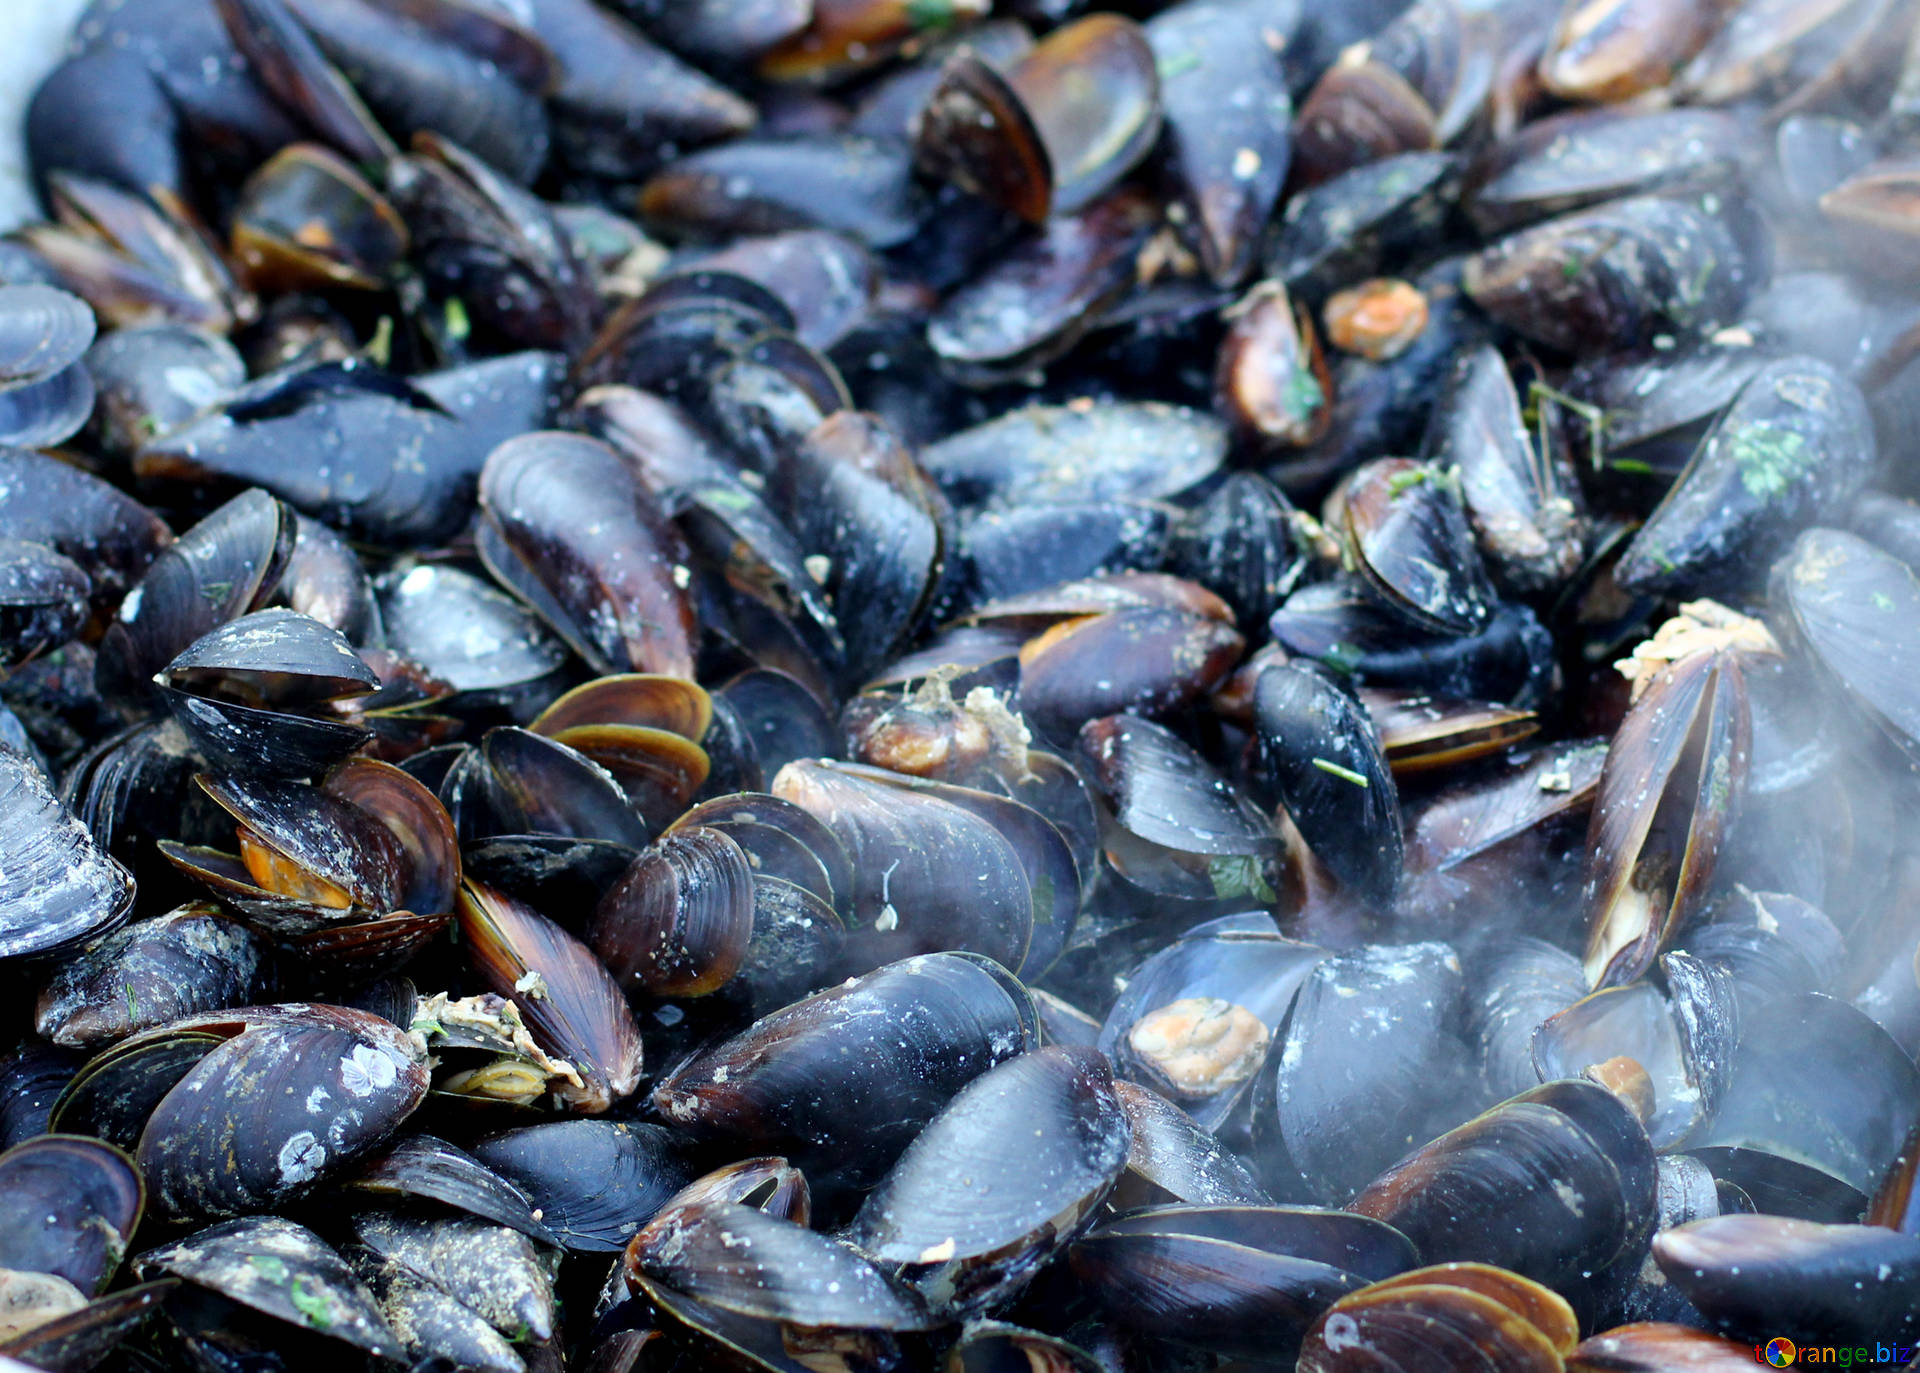 Seafood mussels fried trade № 47512